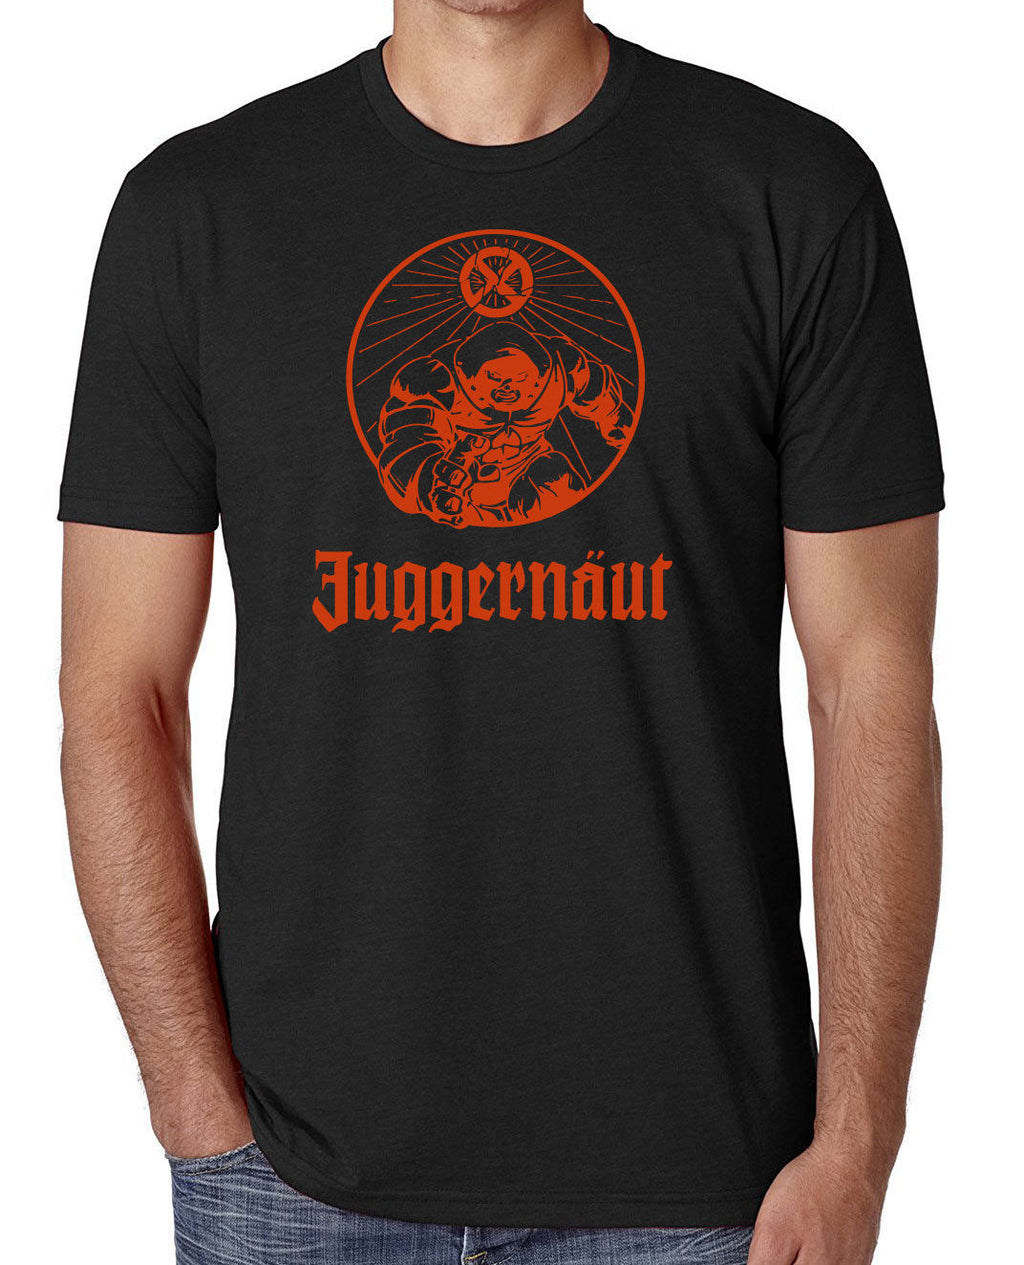 Juggernaut - Jagermeister Mash-Up T-Shirt